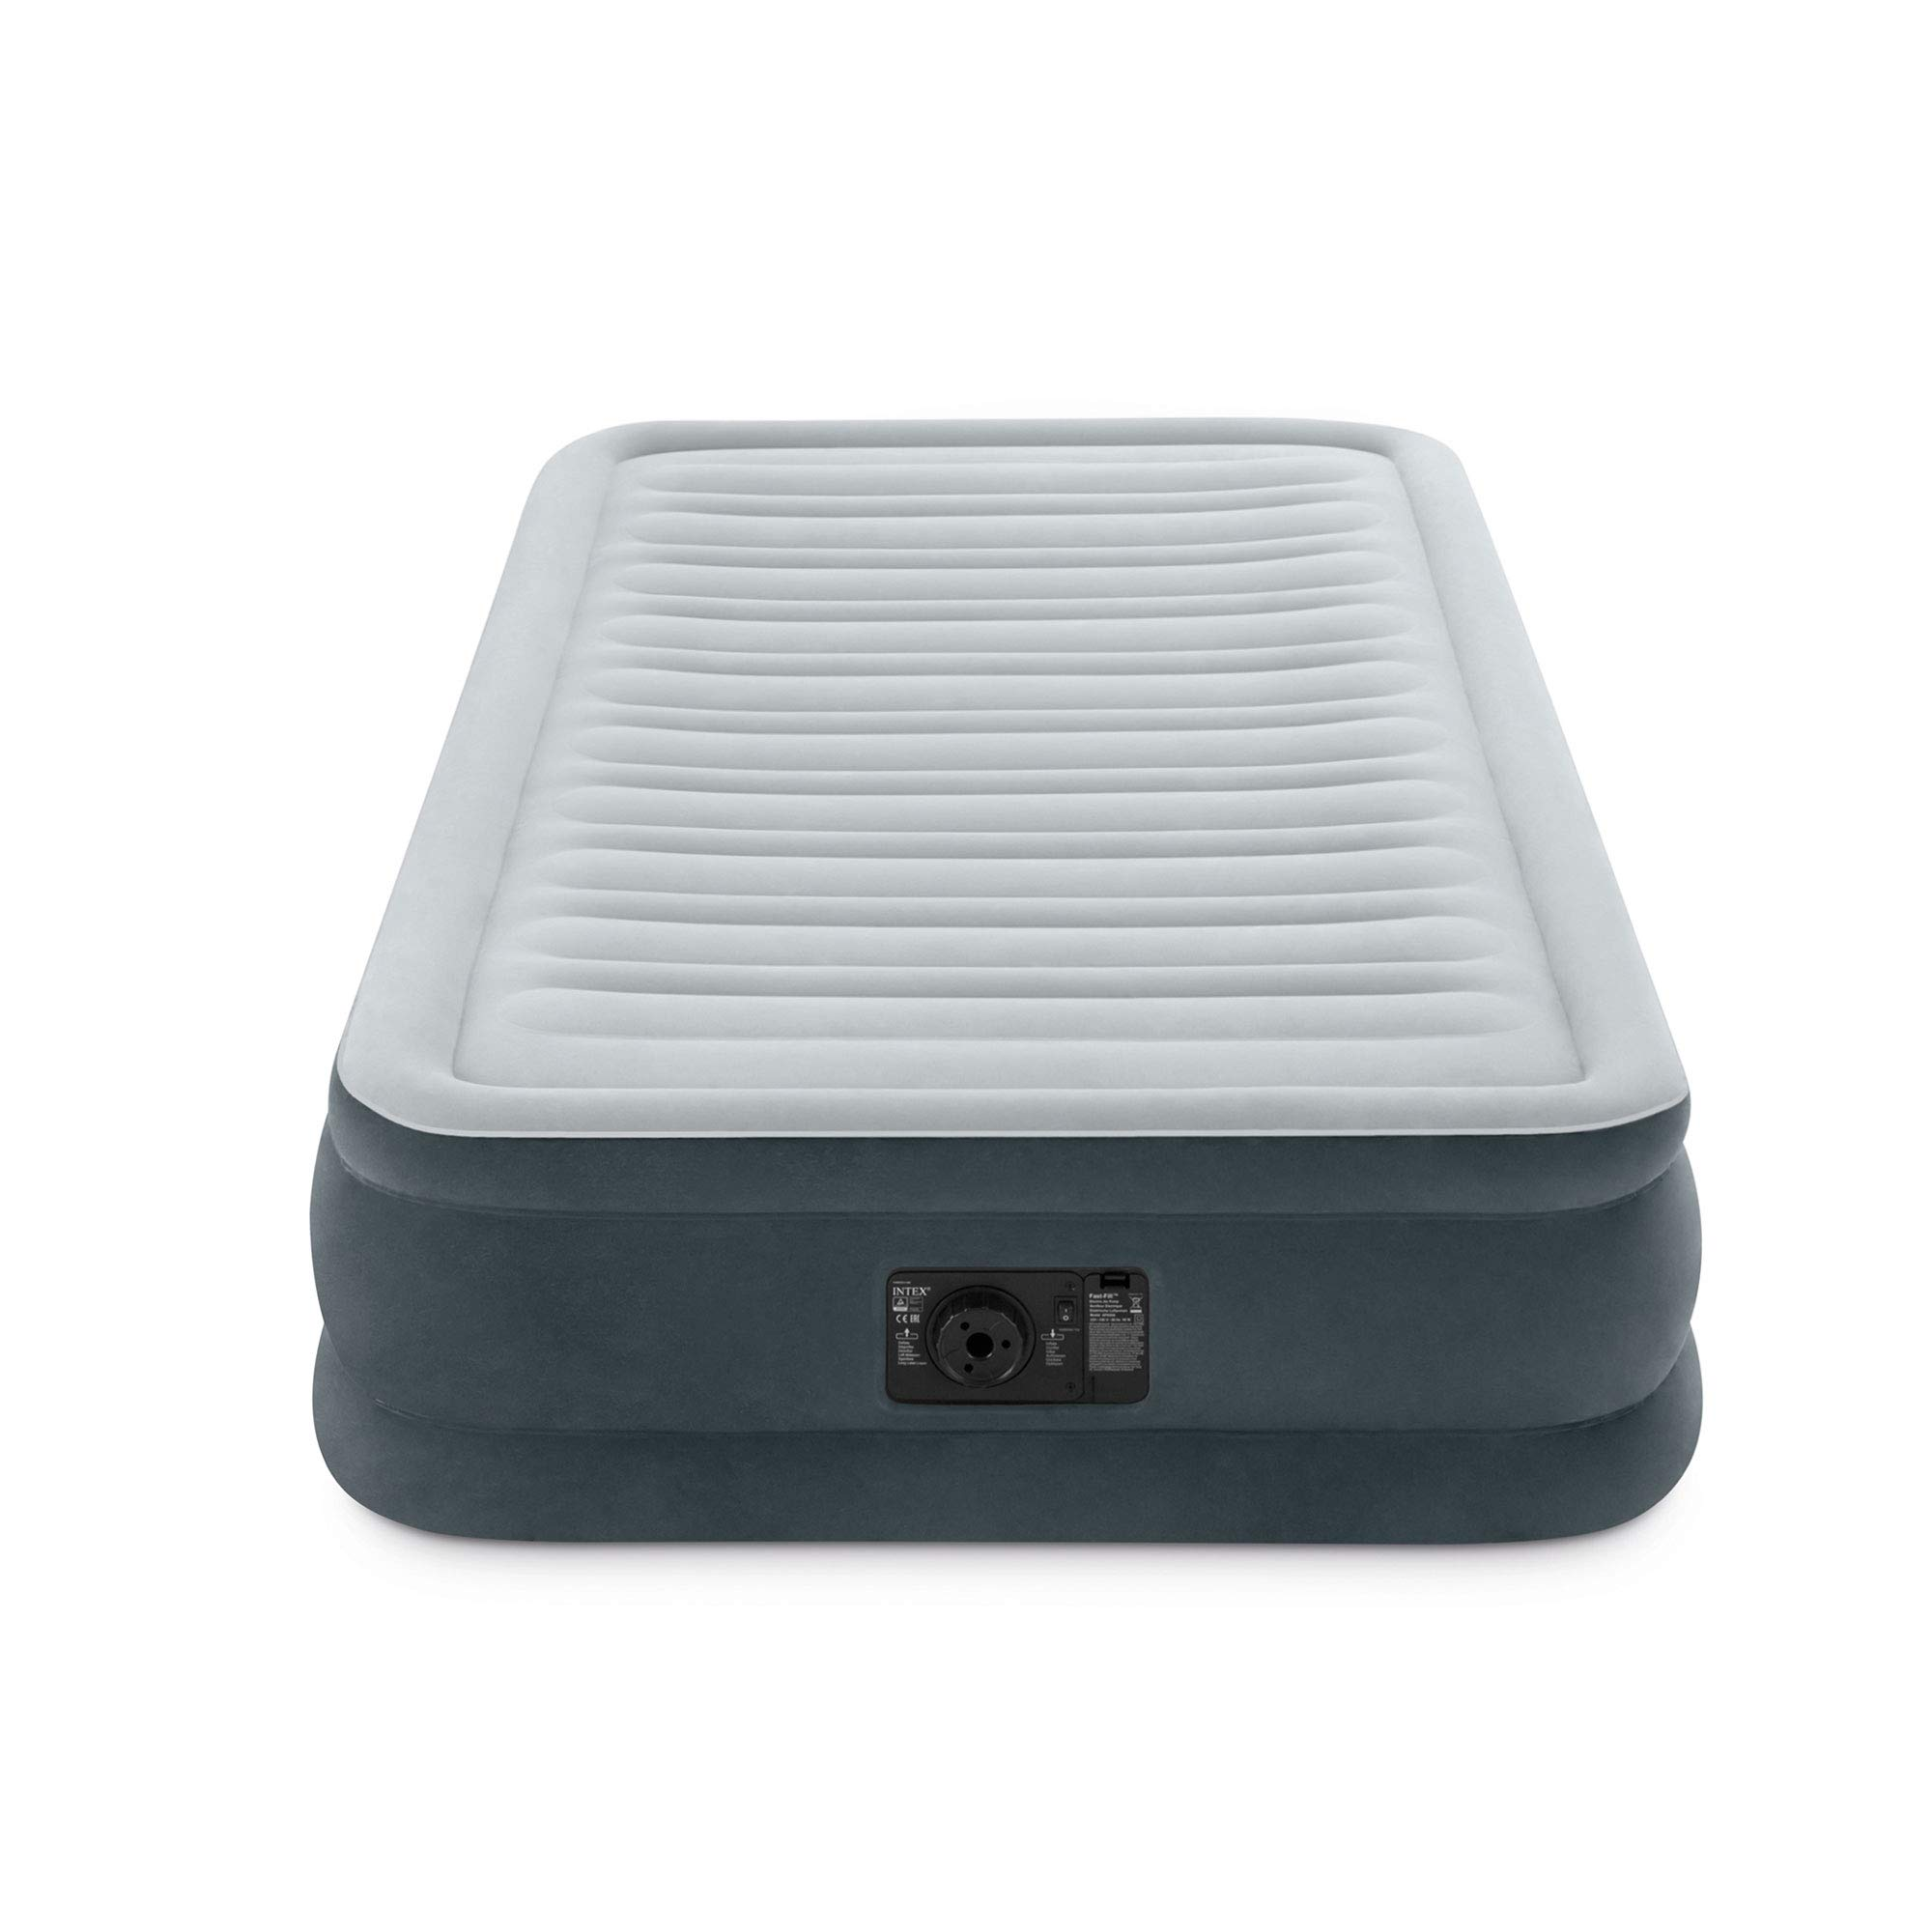 Intex Comfort Plush Mid Rise Dura-Beam Airbed with Internal Electric Pump, Bed Height 13'', Twin